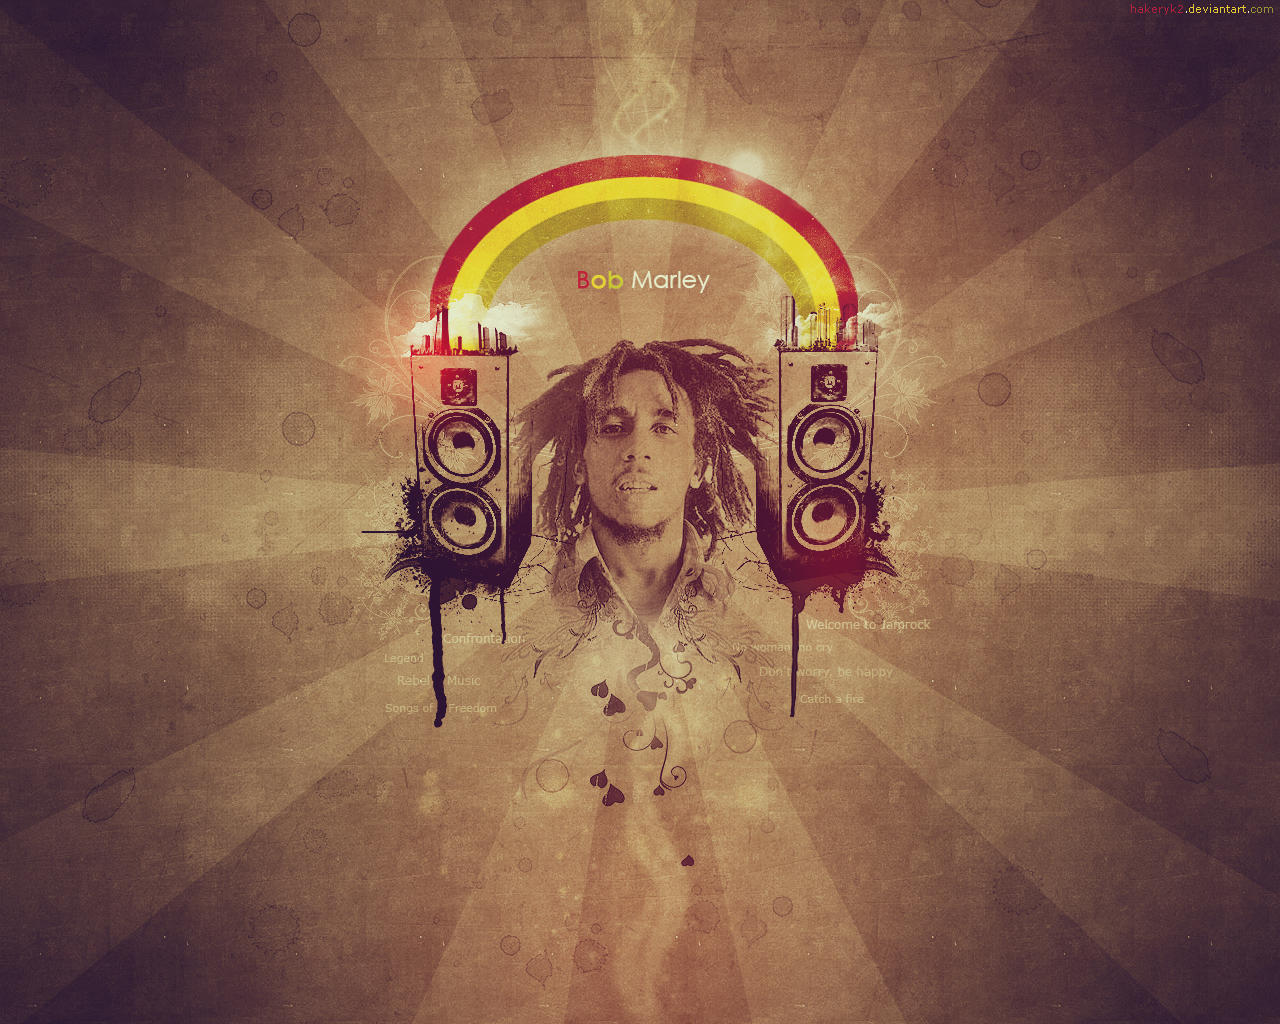 Bob Marley Wallpaper By Hakeryk2 On Deviantart